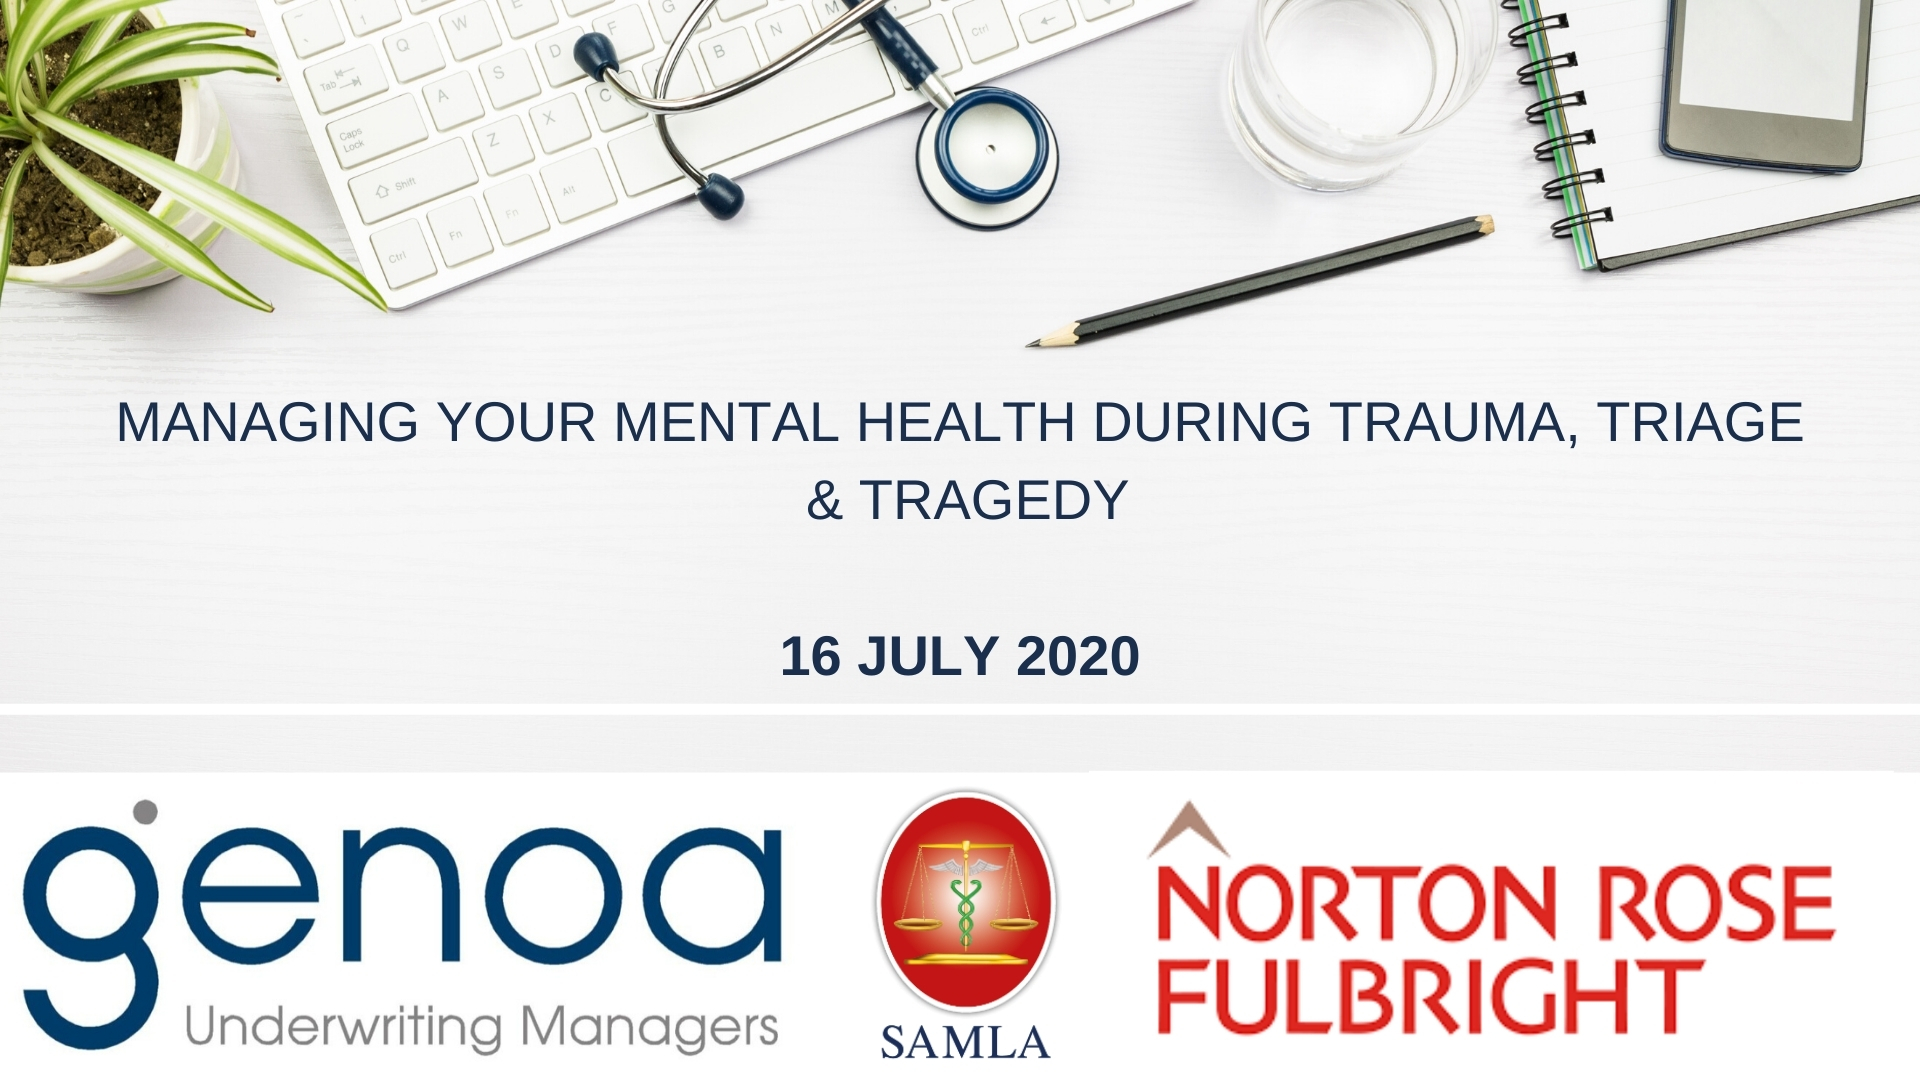 Online Session: Managing Your Mental Health During Trauma, Triage & Tragedy